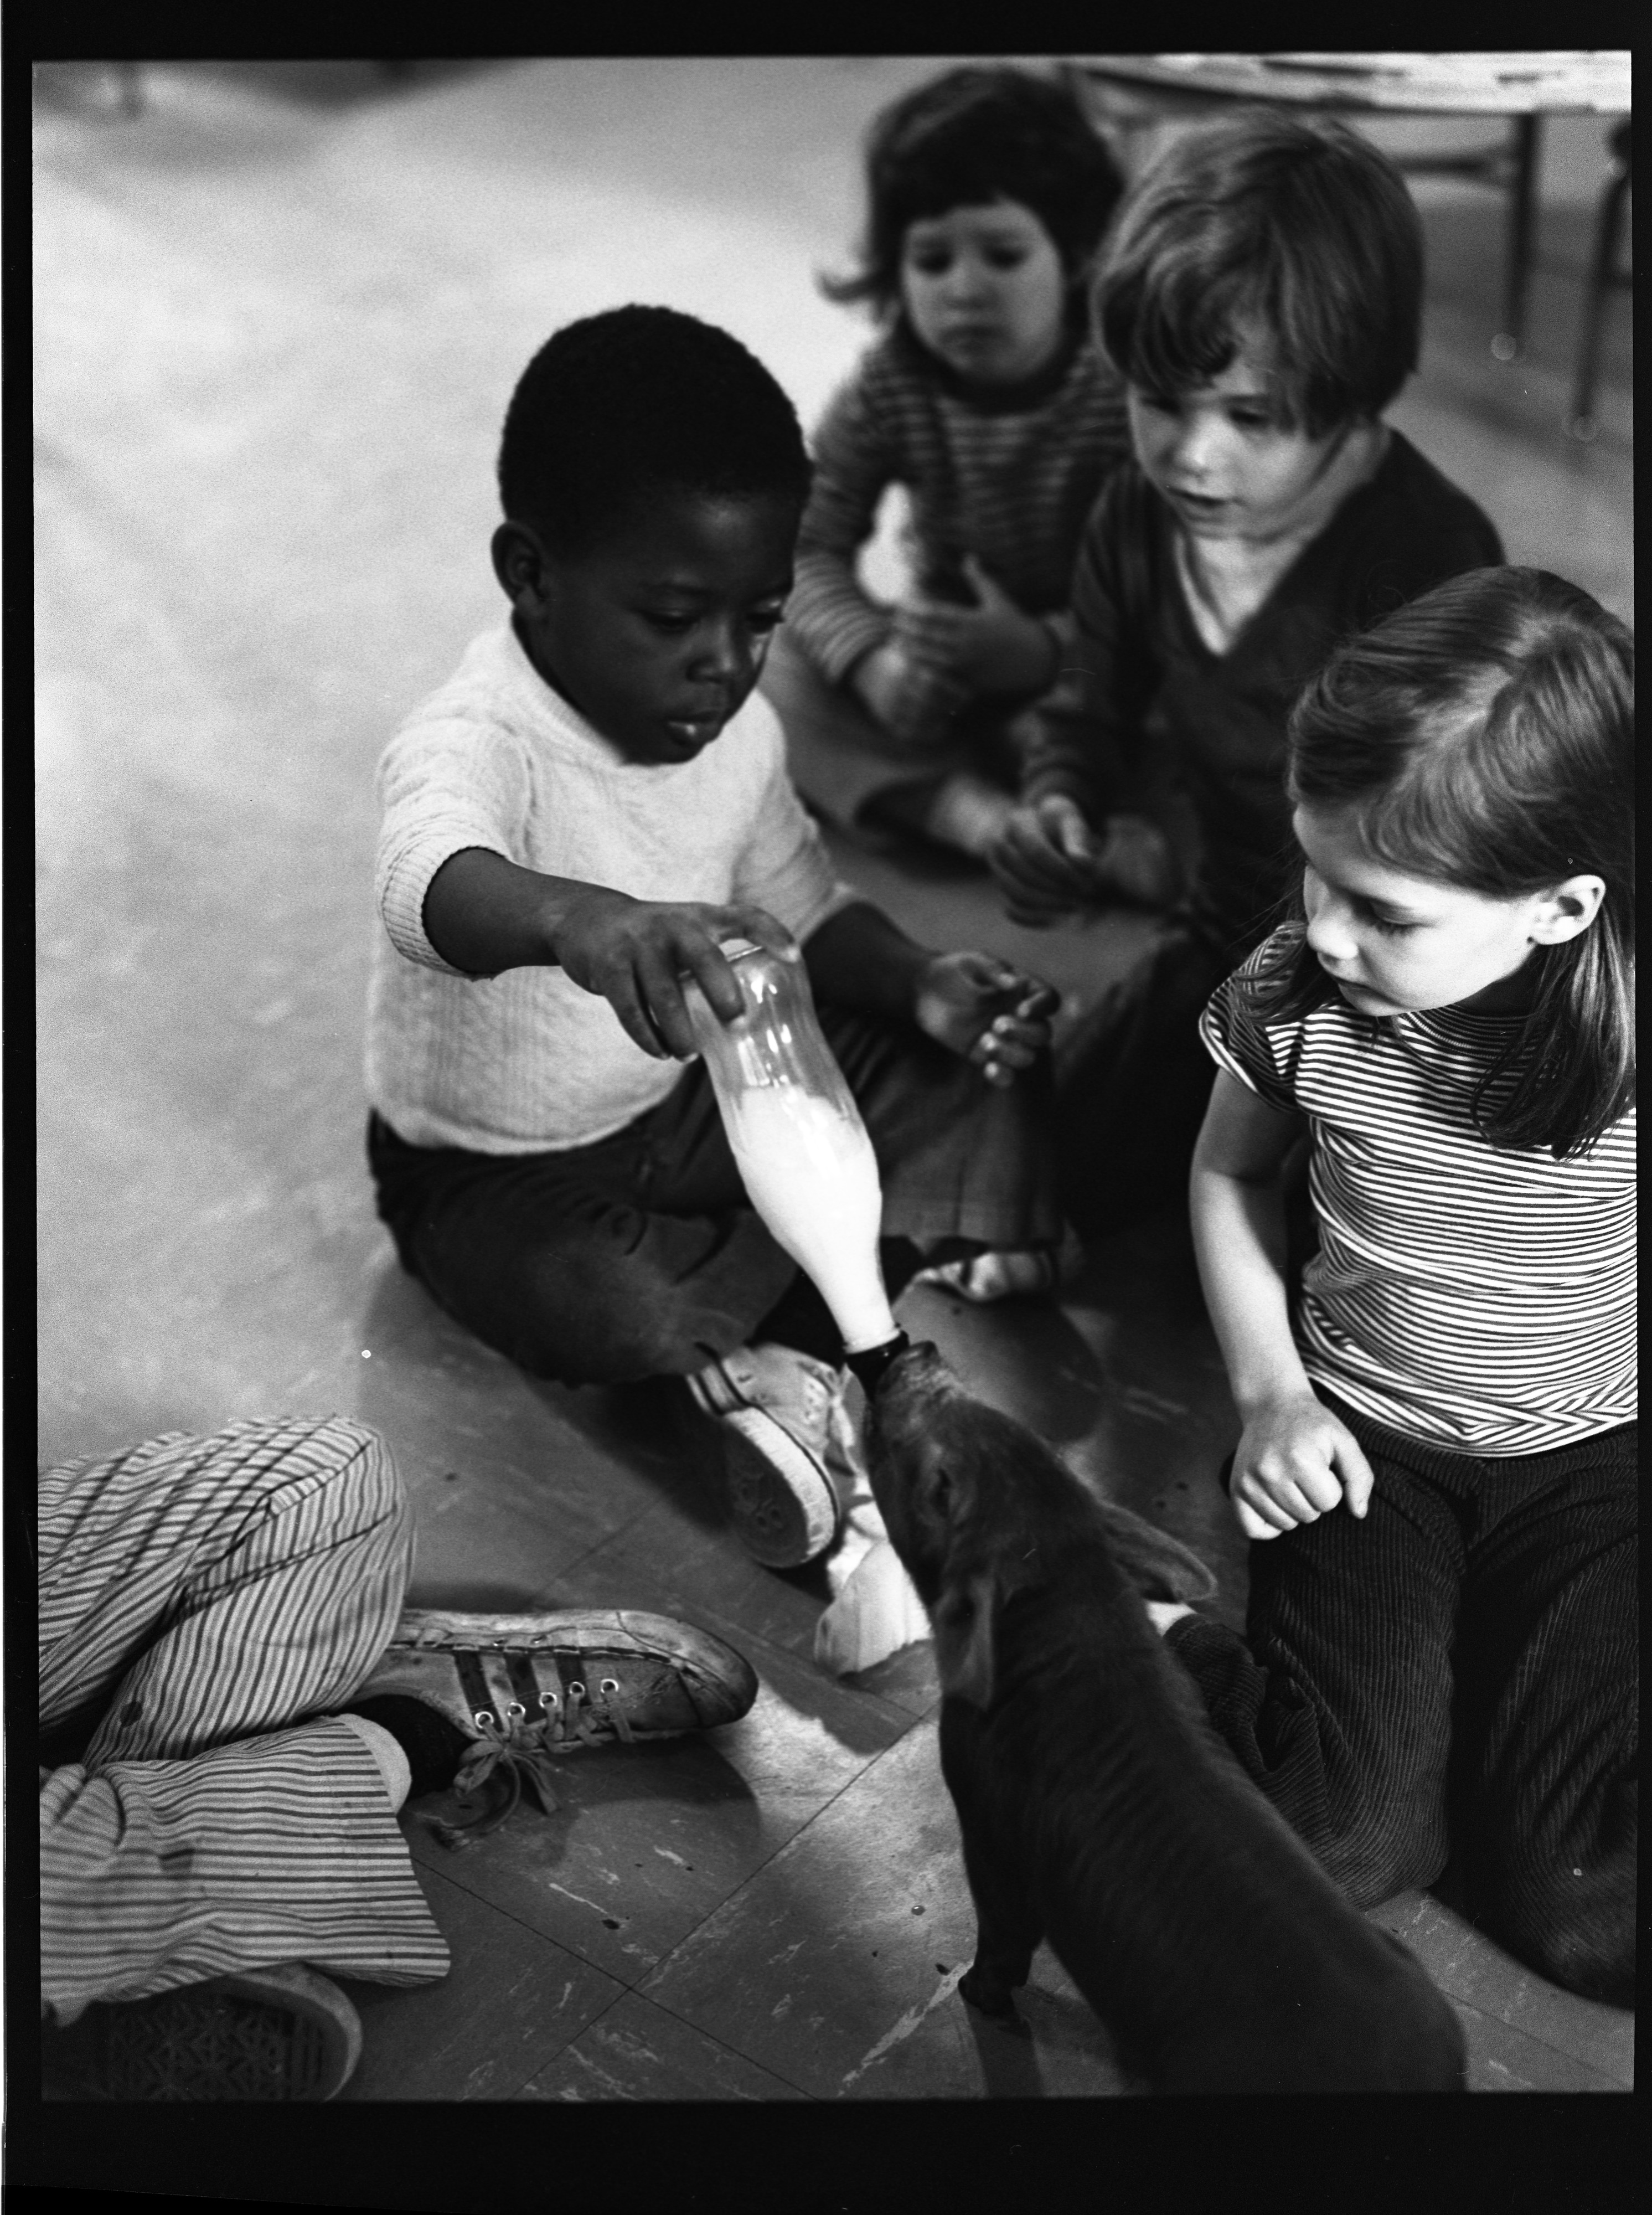 Children Feeding Pig At Perry Nursery School, May 28, 1971 image